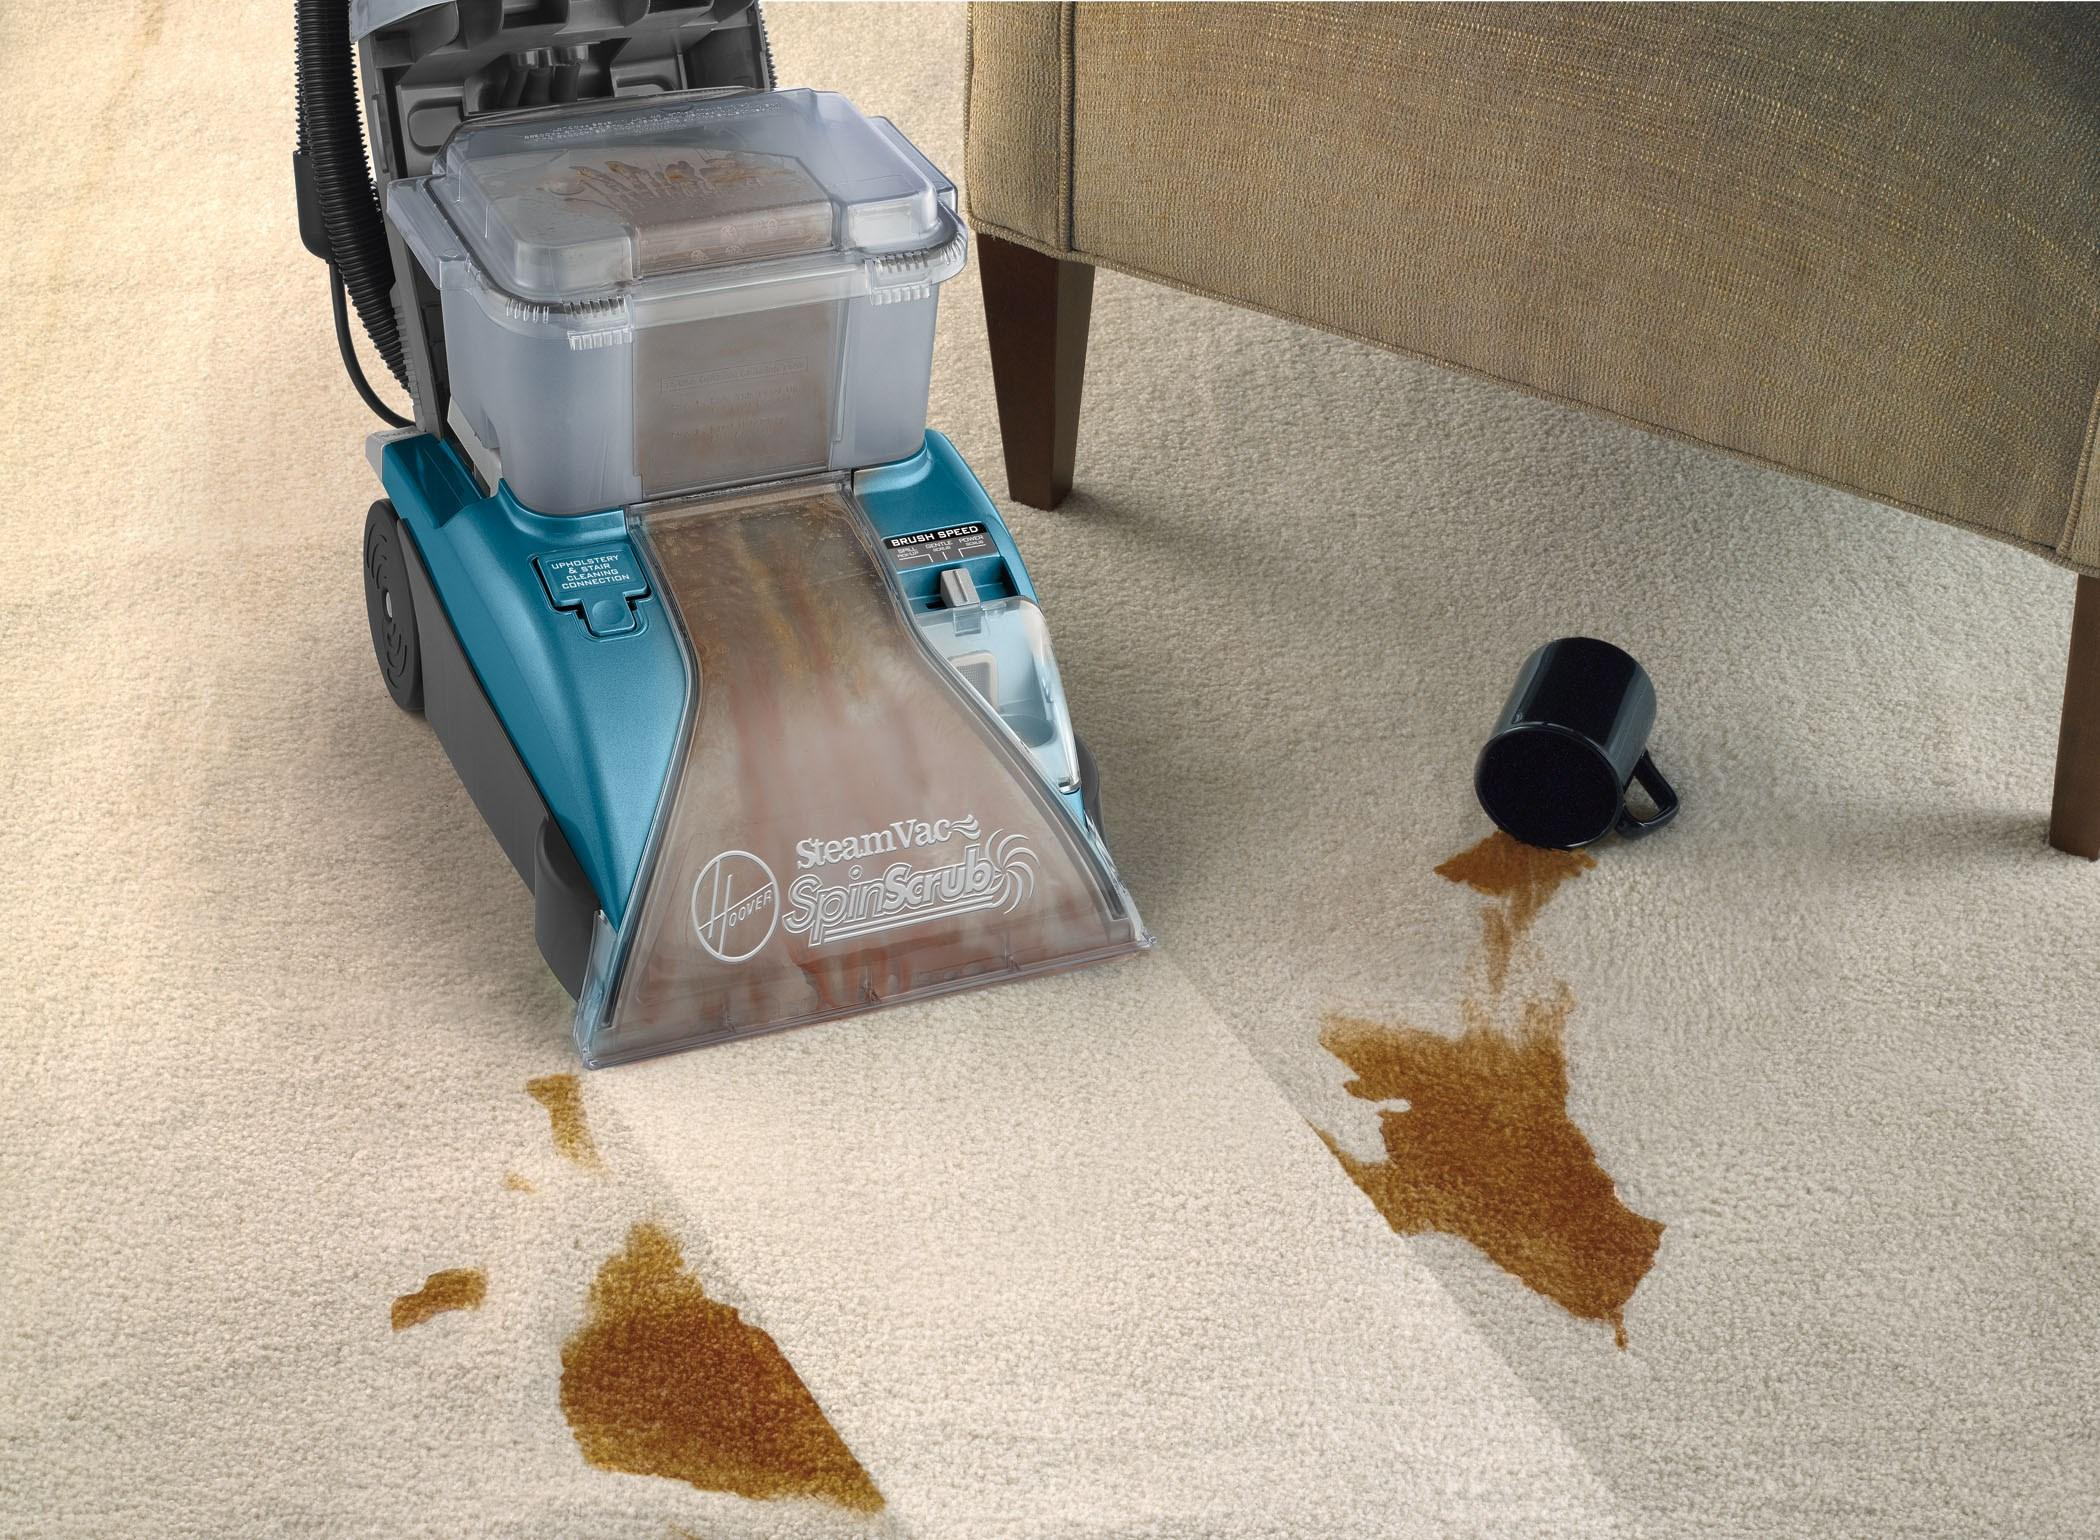 Hoover Steamvac Carpet Cleaner With Clean Surge F5914900 Home Kitchen